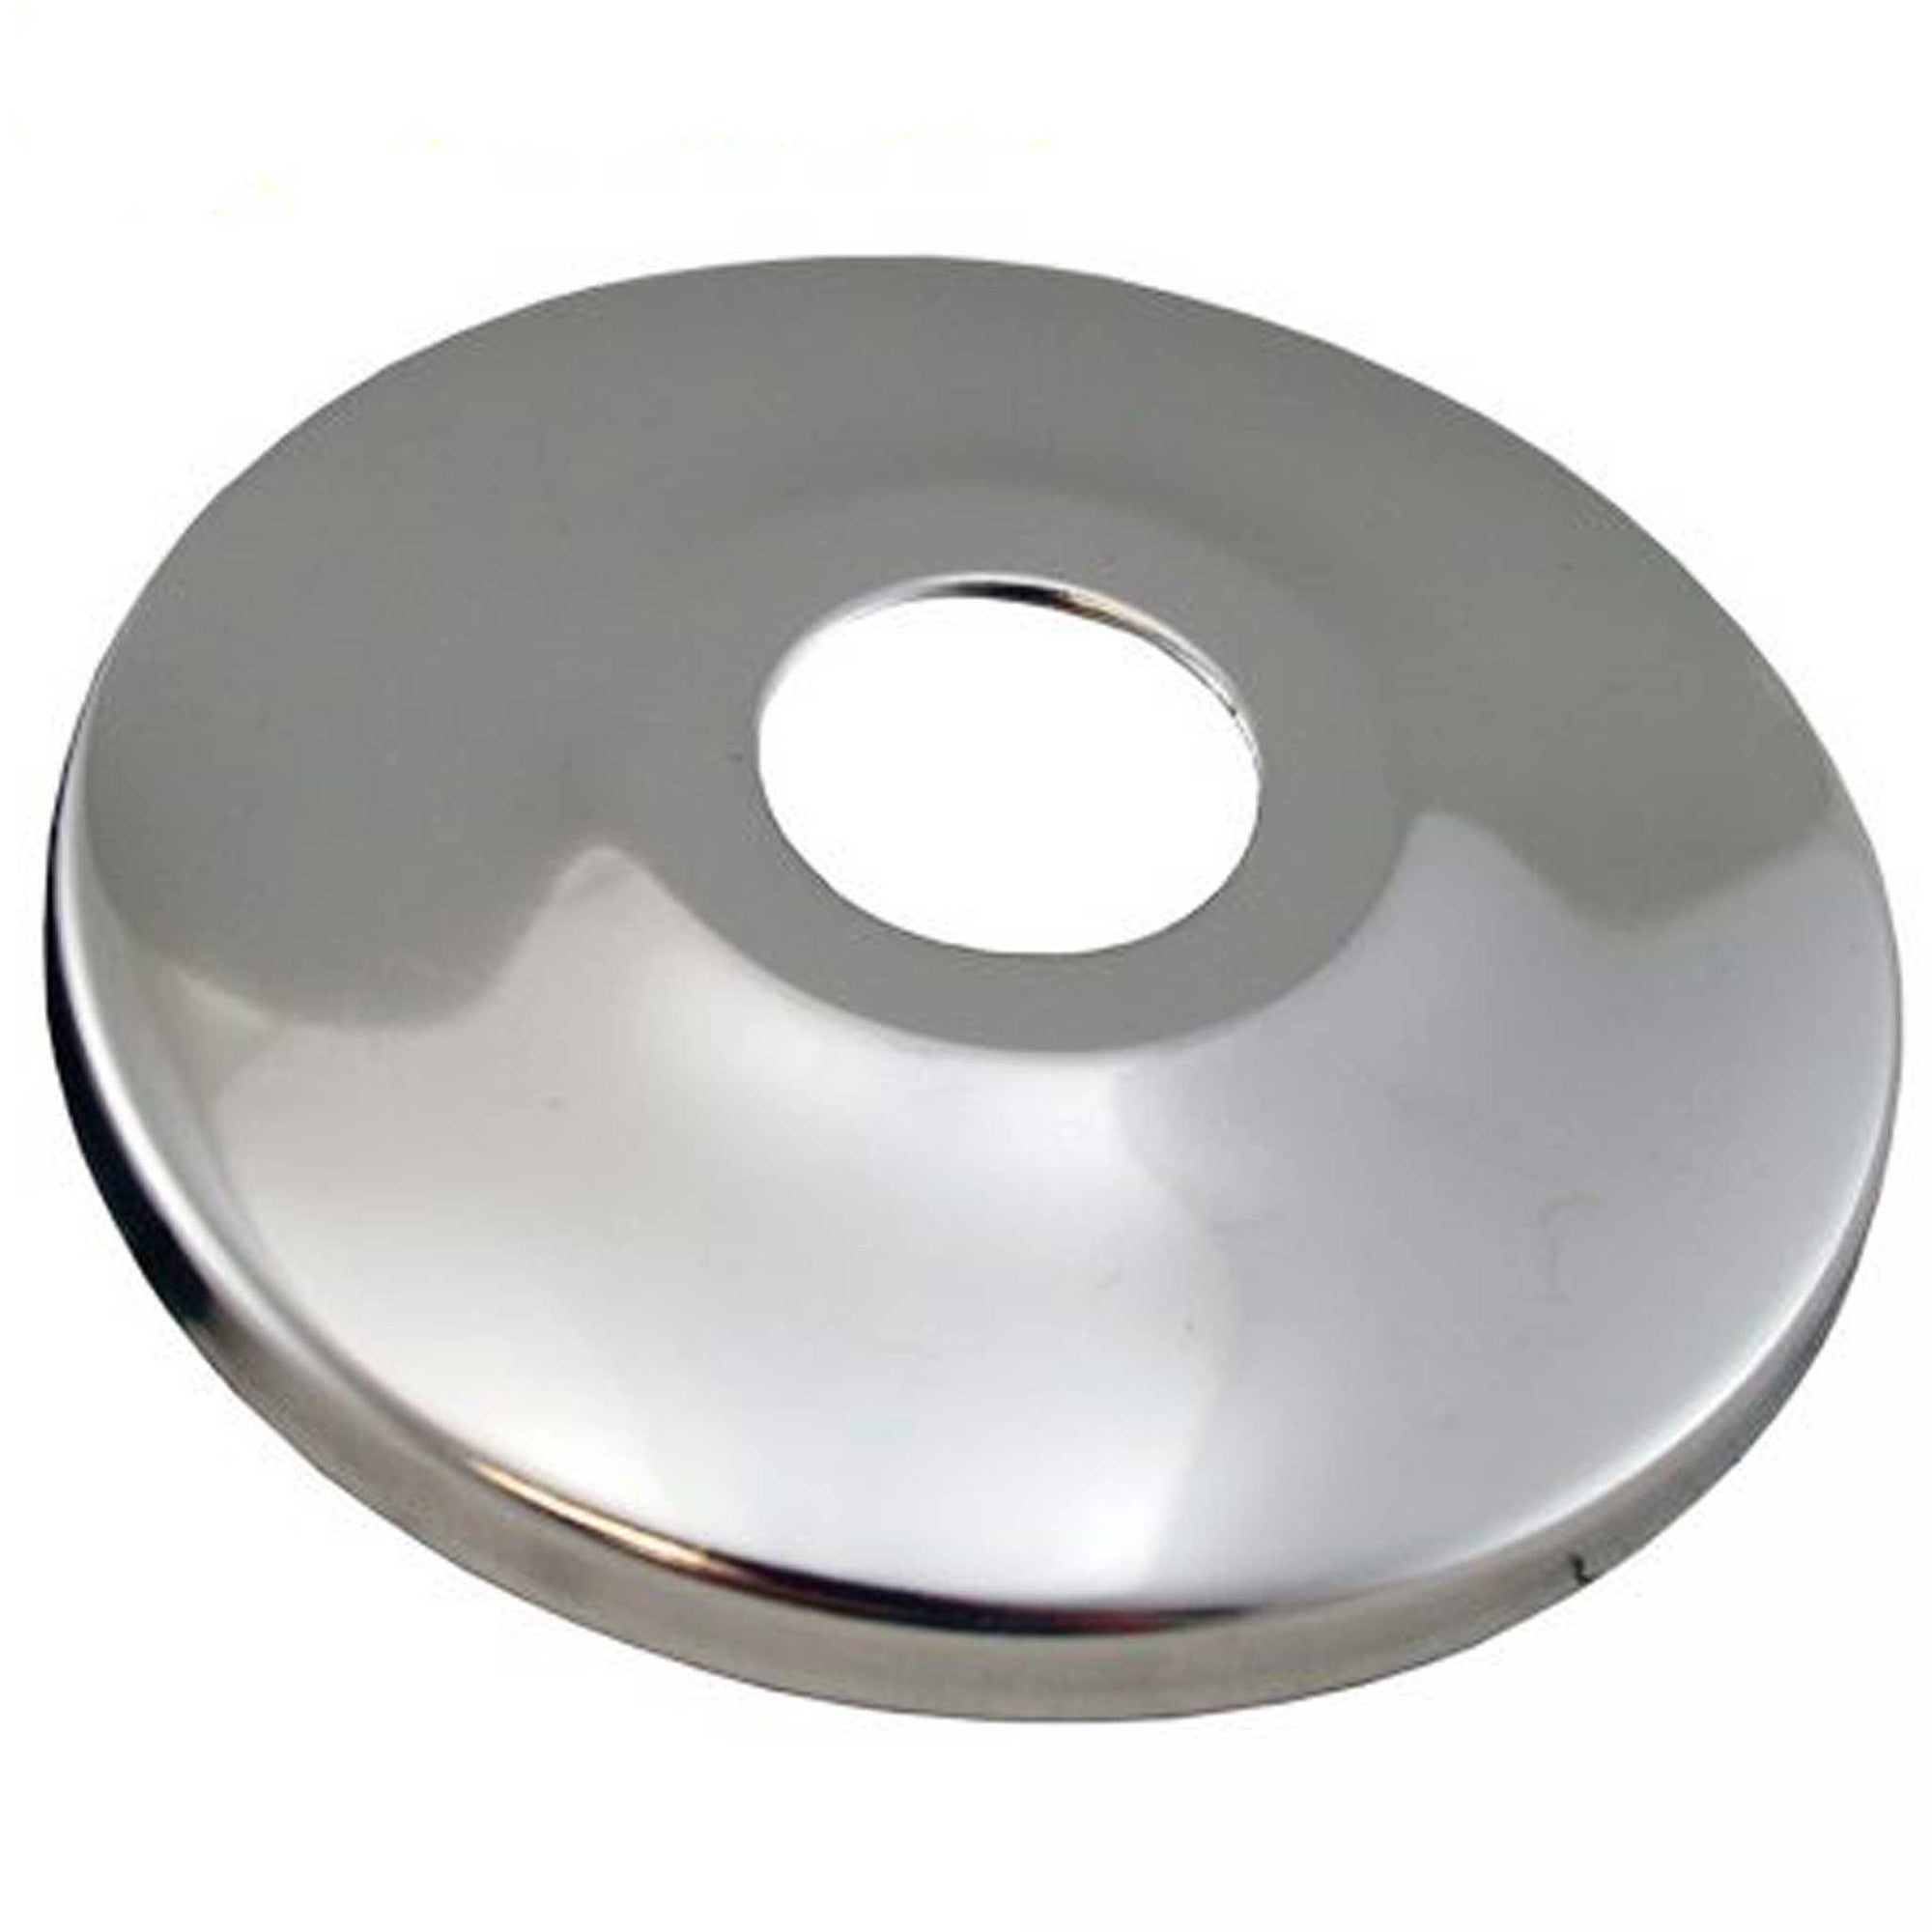 Chrome Plated Steel Low Profile Escutcheon